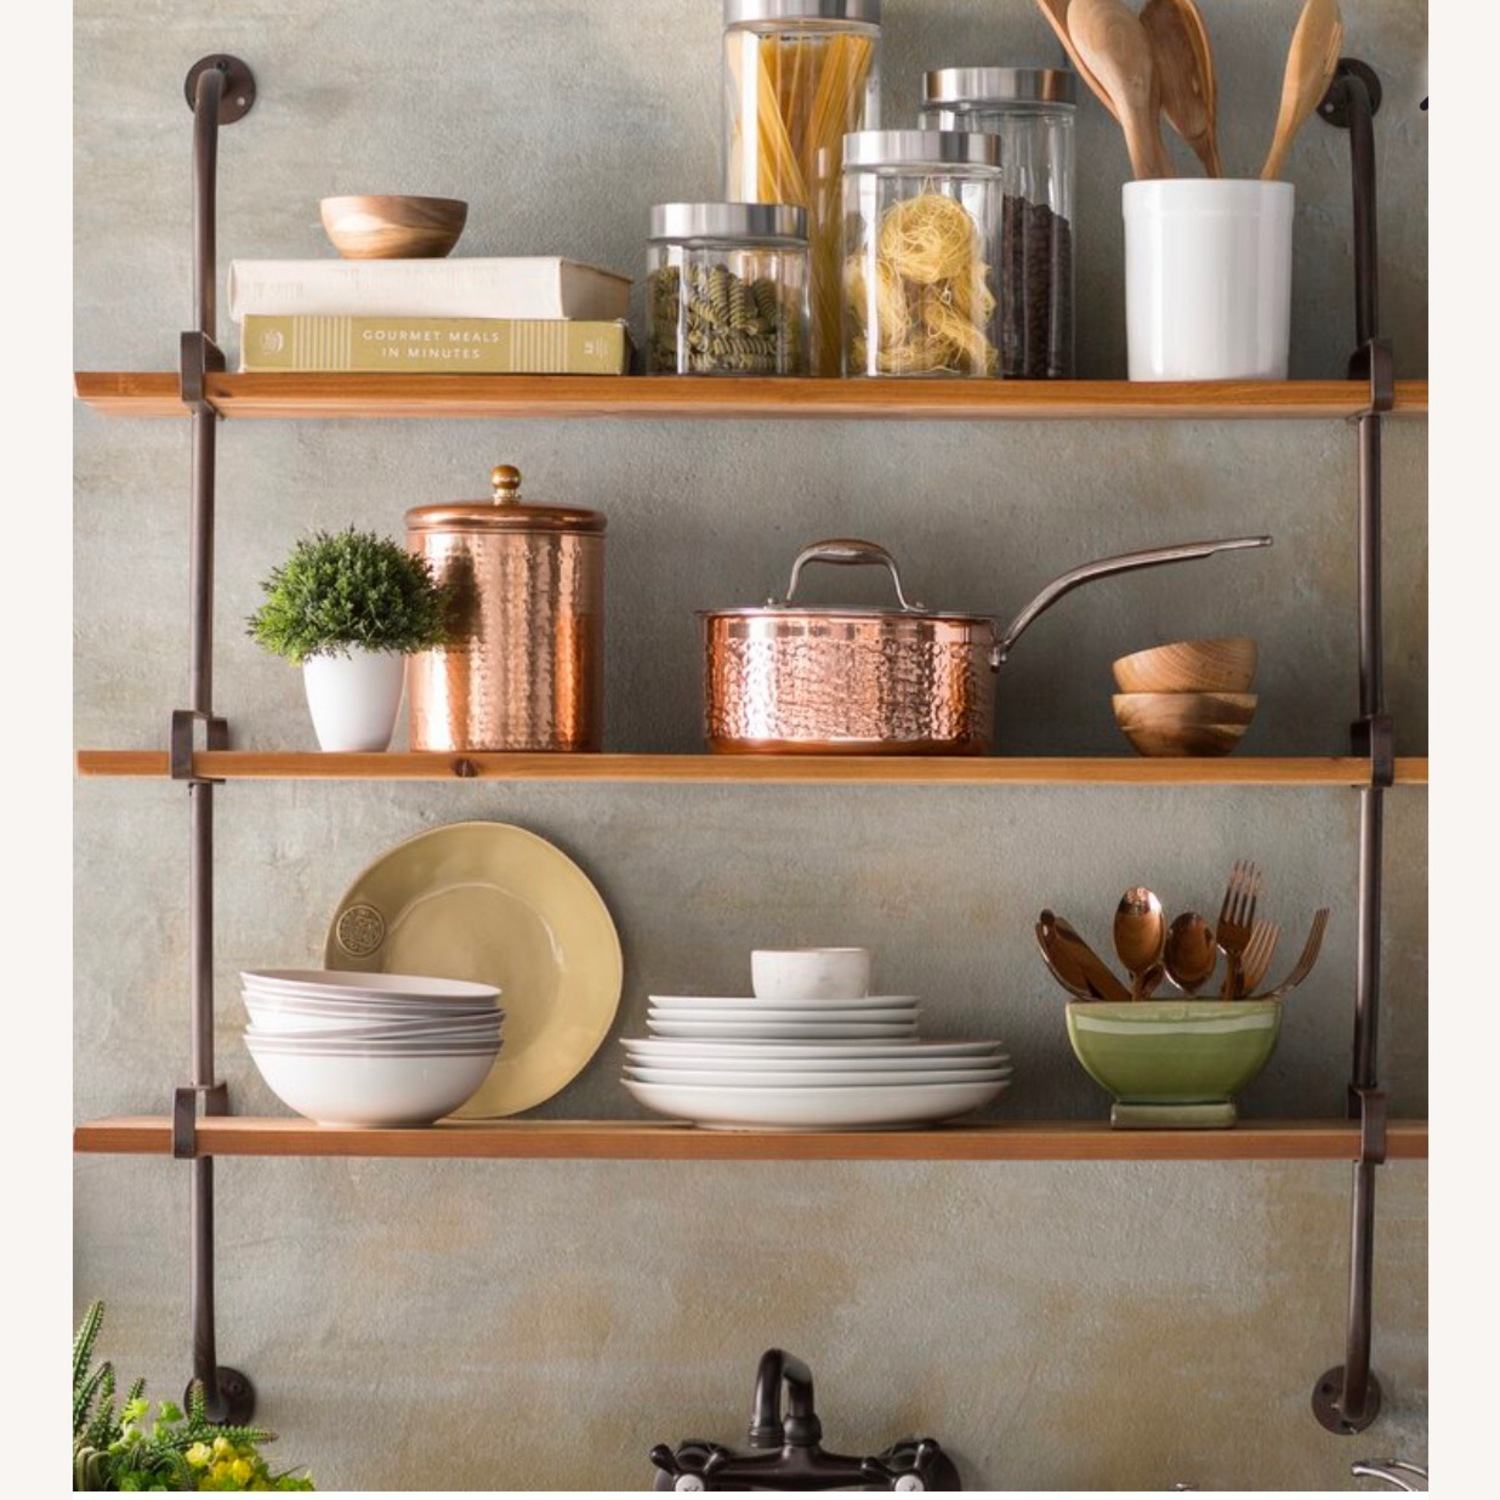 Wayfair Rustic Wood and Metal Wall Shelf - image-2